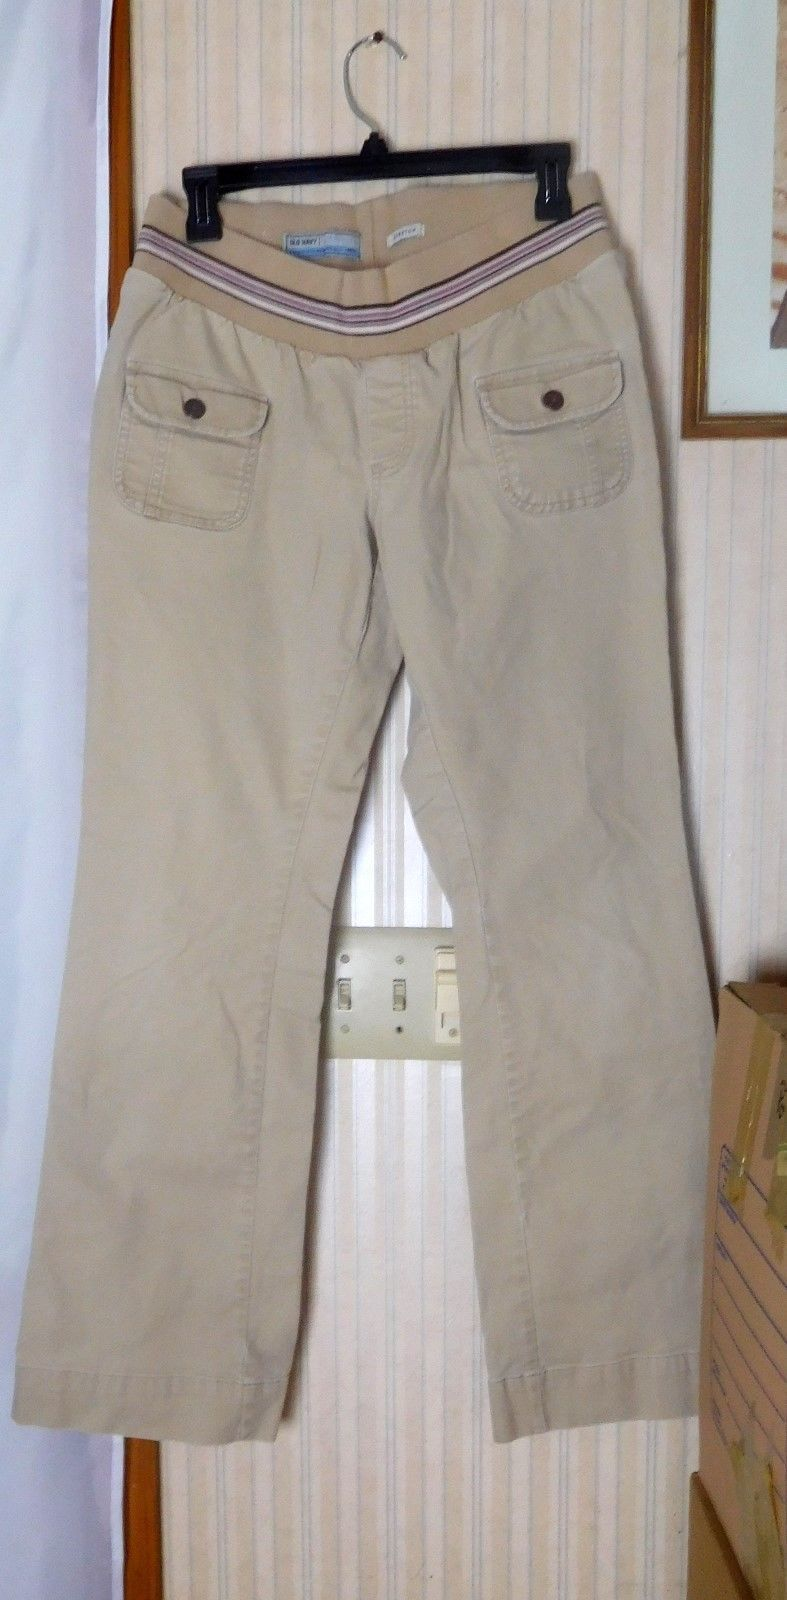 ffe11a37f808a Old Navy Women's Maternity Pants - Size M and 50 similar items